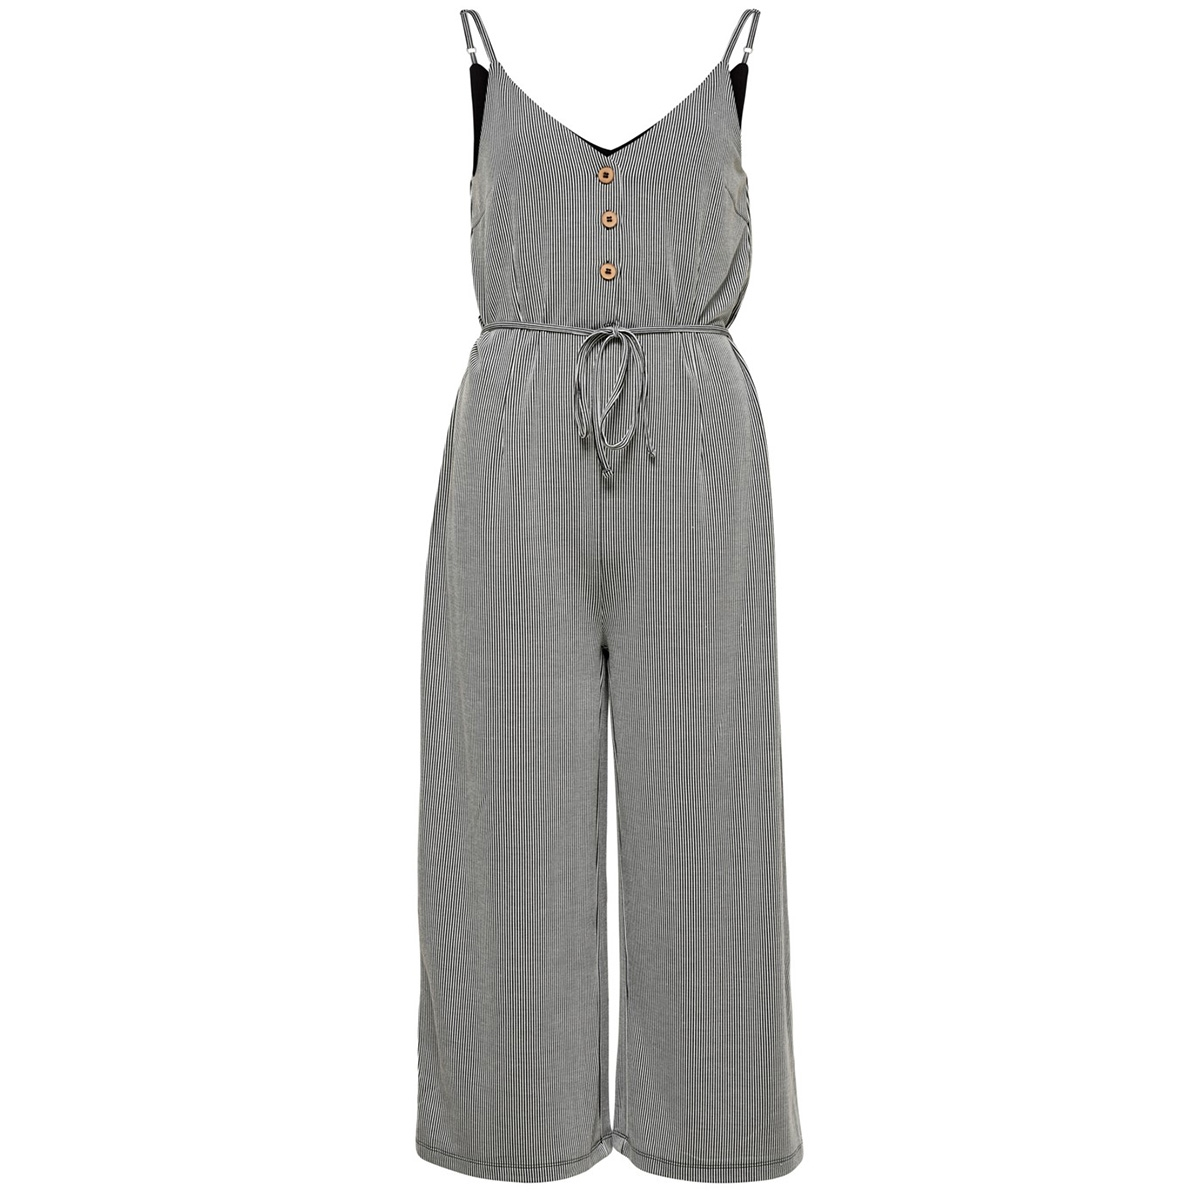 onlshirley s/l jumpsuit jrs 15180182 only jumpsuit black/cloud dancer